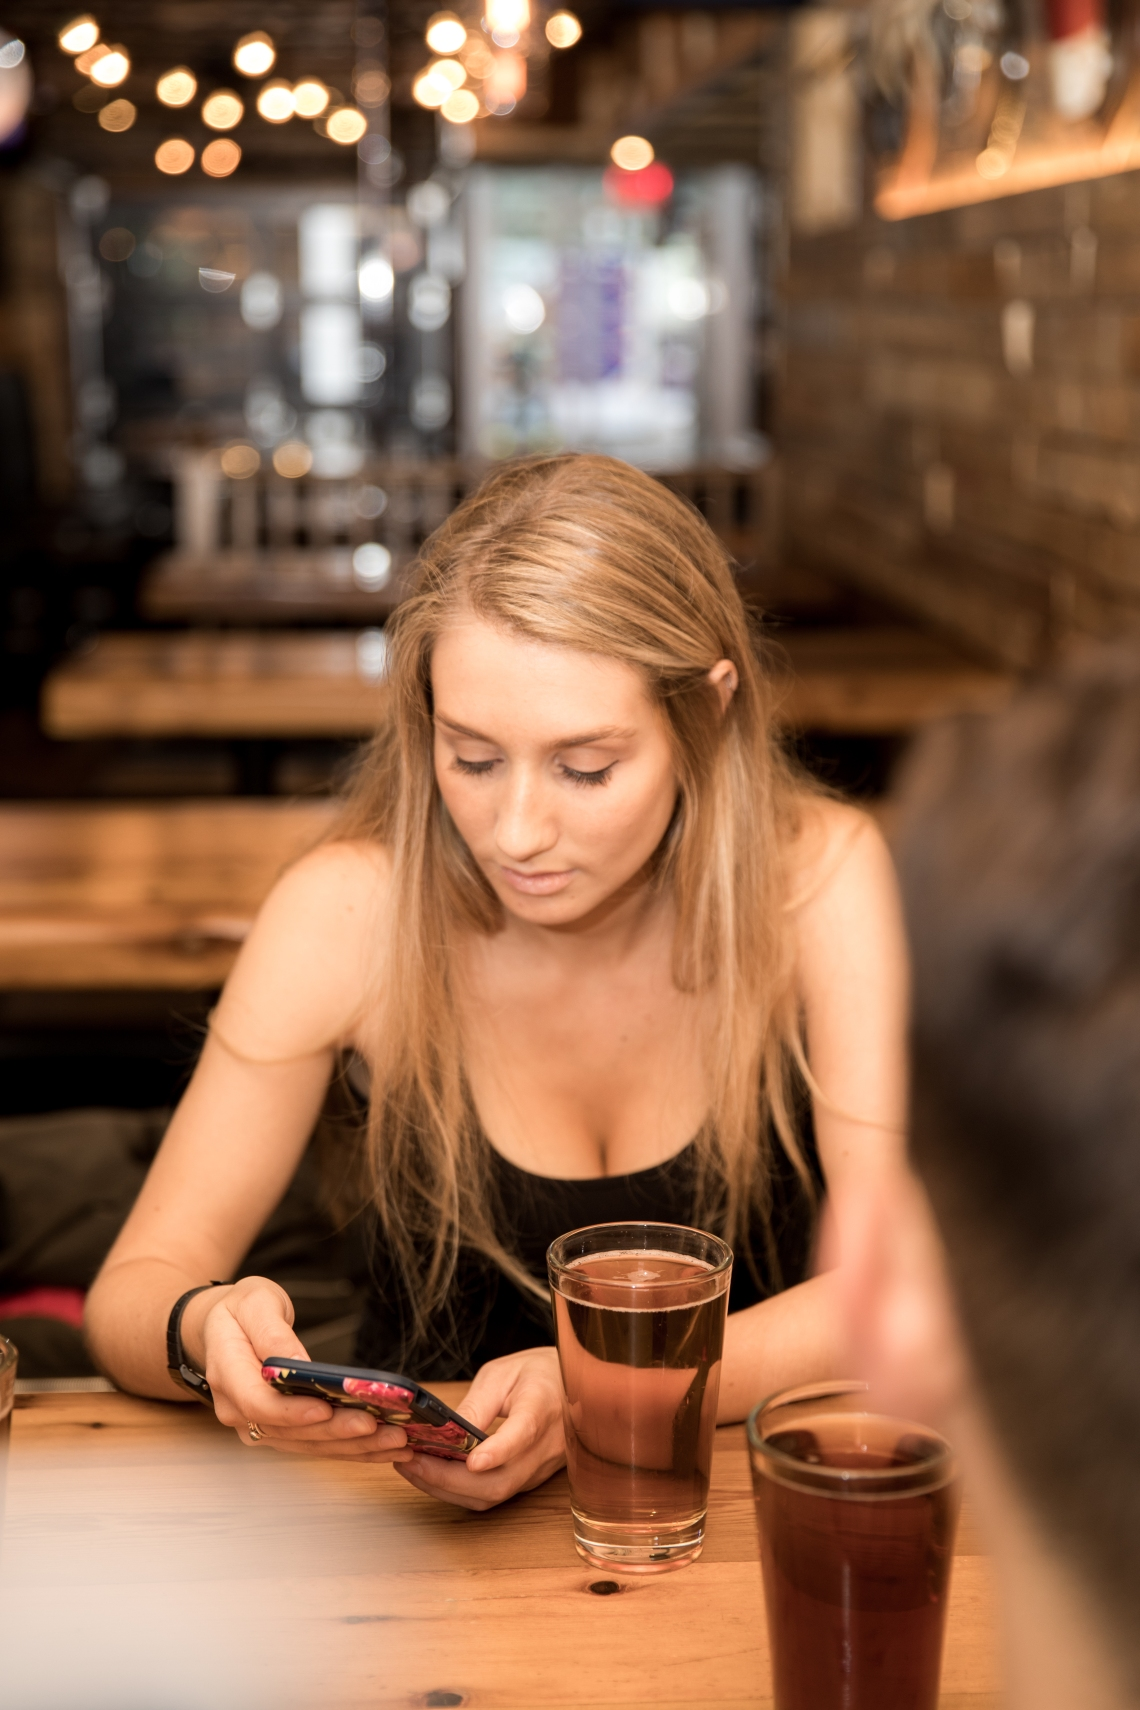 woman drinking beer and checking cell phone